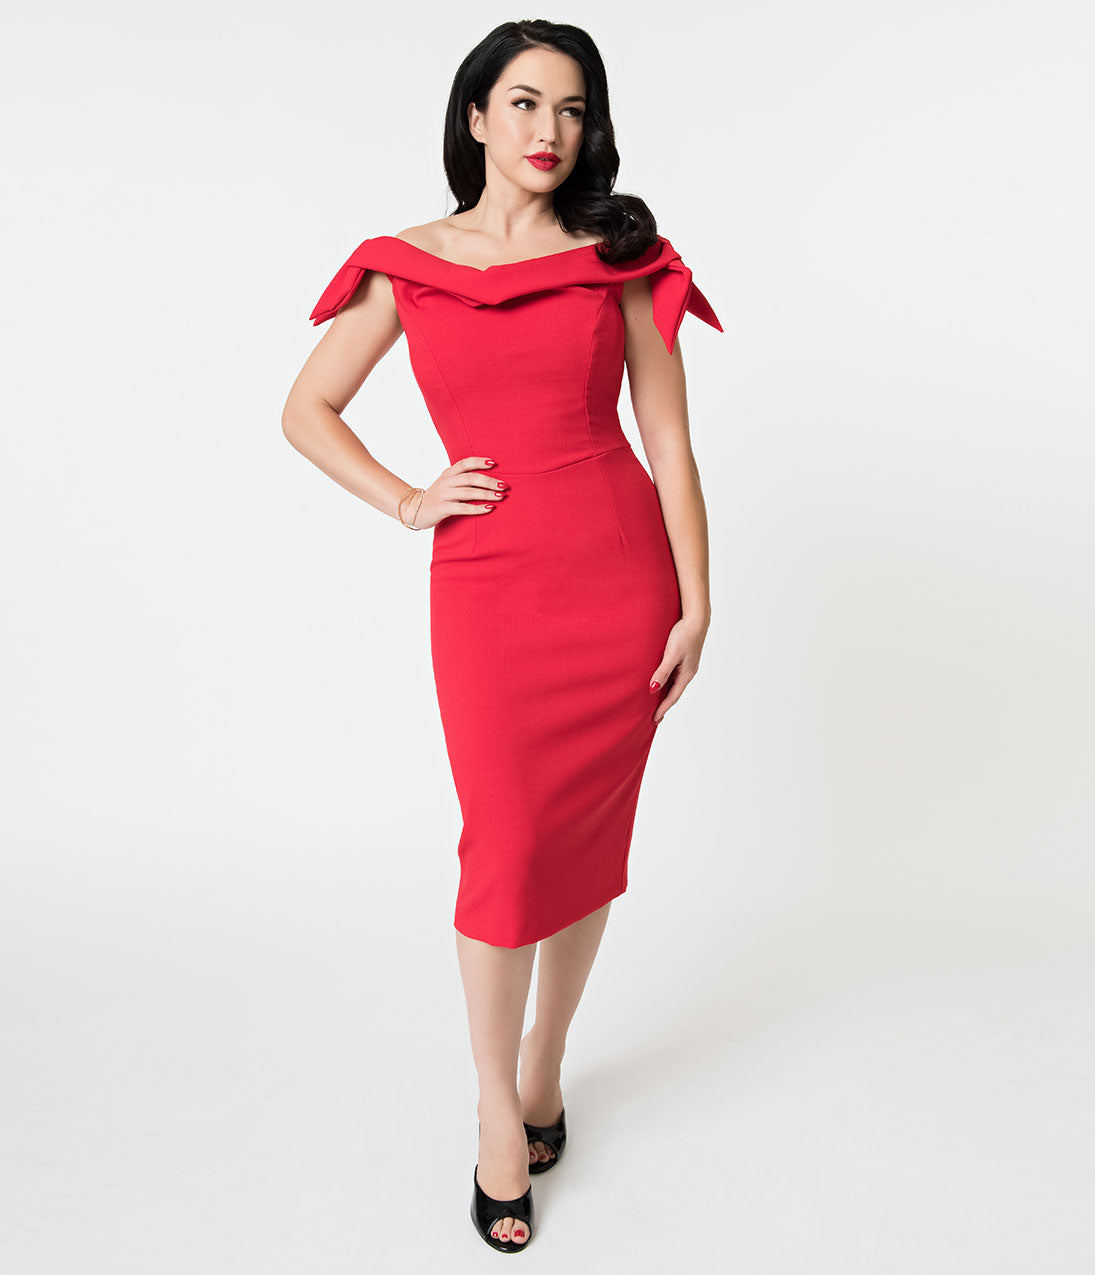 1950s Dresses, 50s Dresses | 1950s Style Dresses The Pretty Dress Company Red Off The Shoulder Tilly Pencil Dress $158.00 AT vintagedancer.com